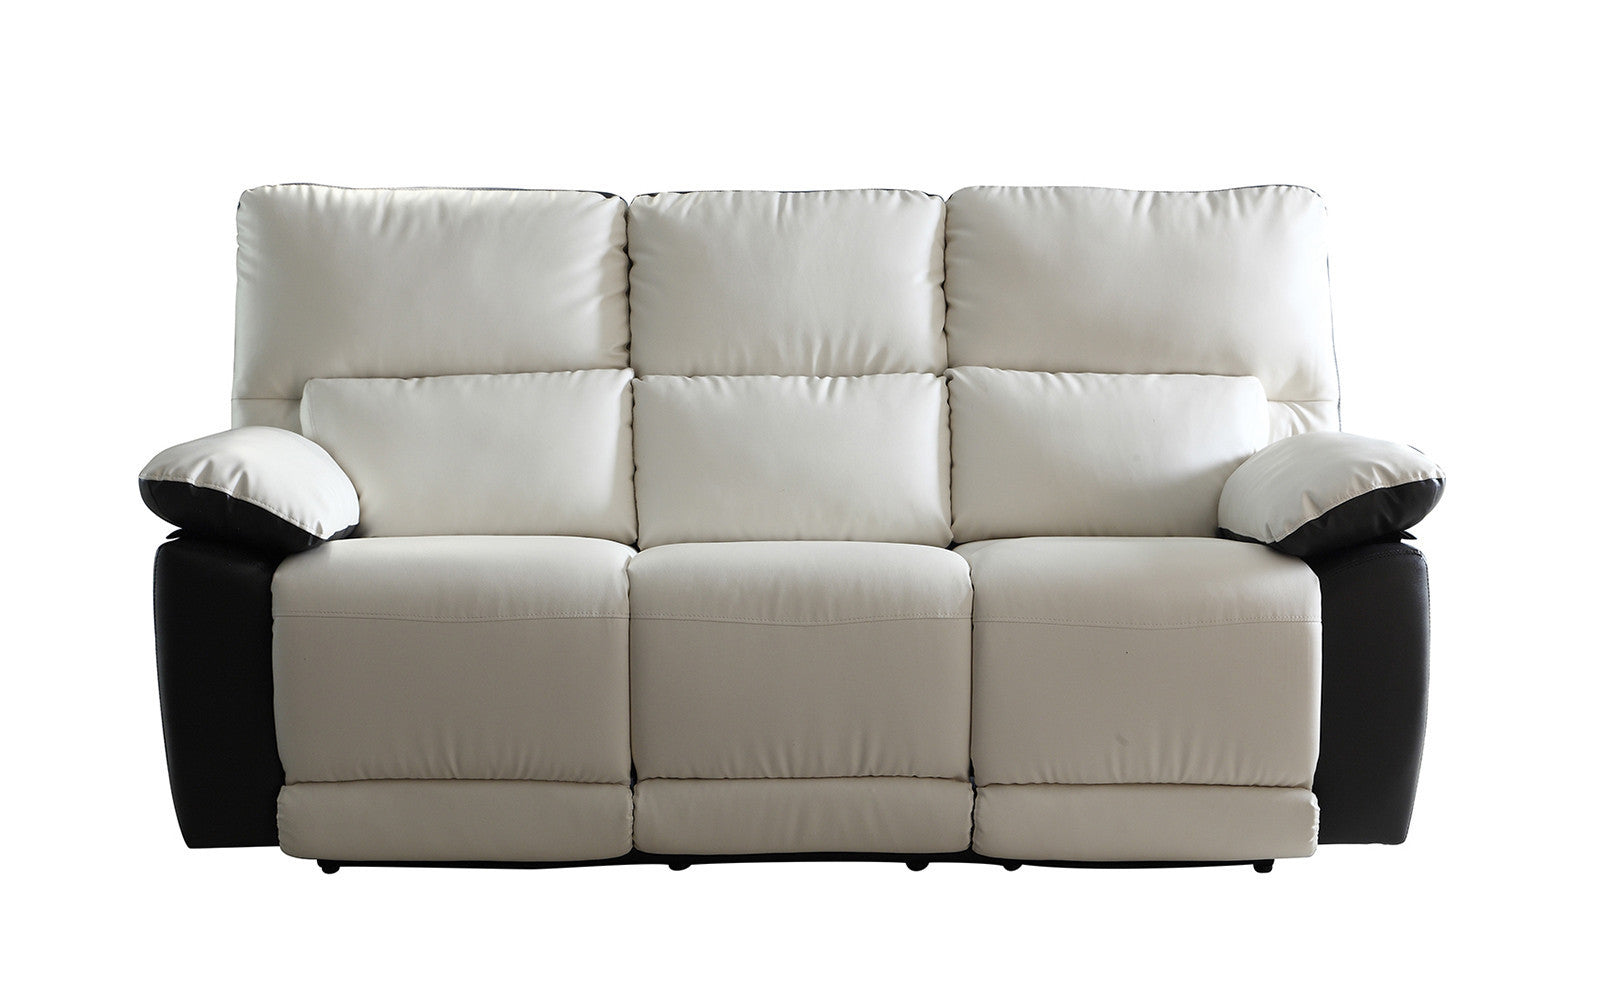 ... Leather Reclining Sofa · Blanco Modern 2 Tone Recliner Sofa ...